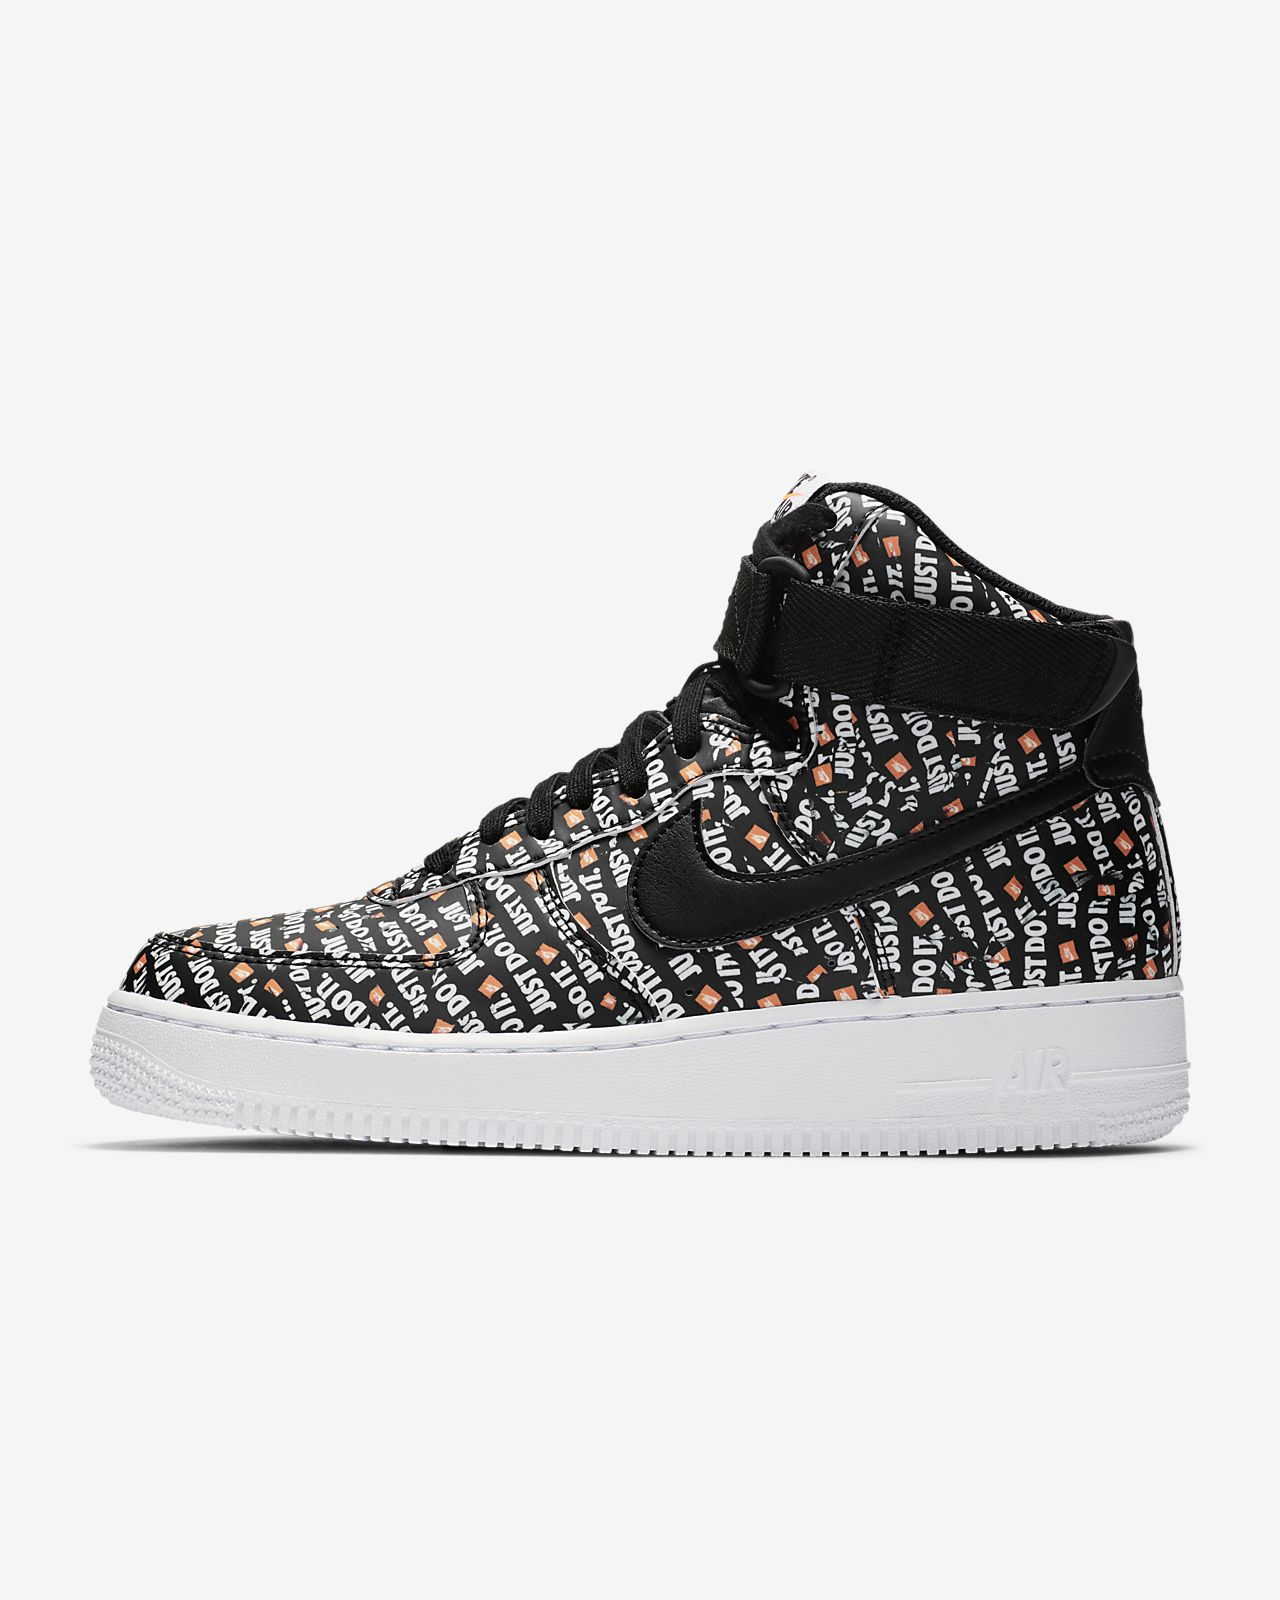 High Femme Efqws Lx In Nike Shirt Air Fr Chaussure Pour 1 Force 54RS3AjqcL